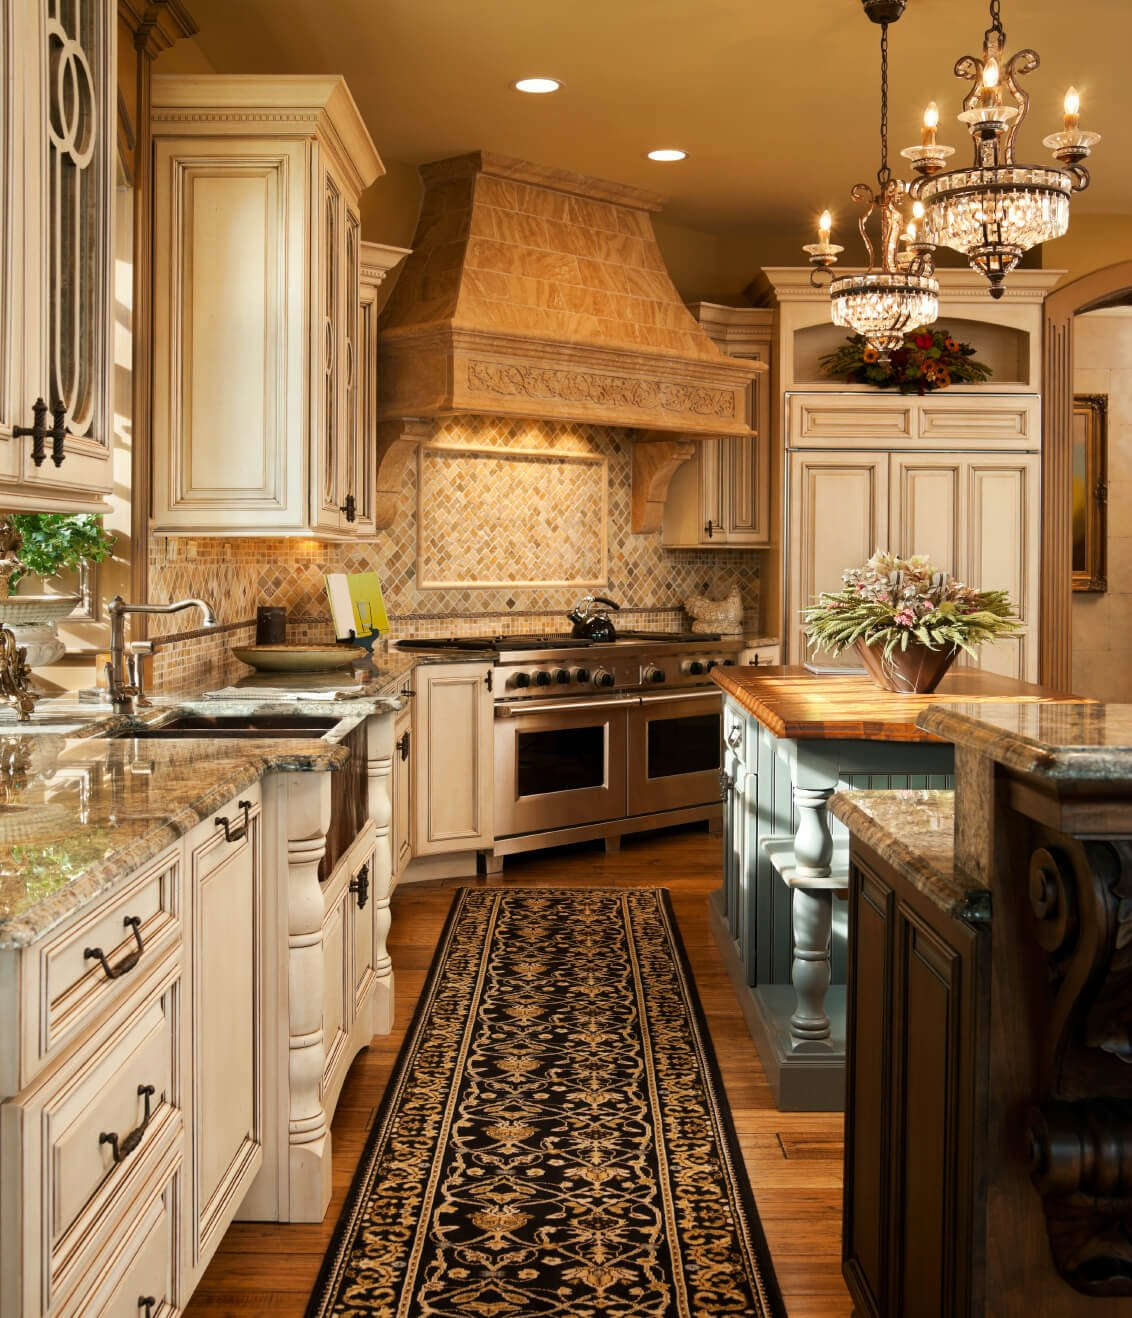 A fantastic wood kitchen with painted cabinets. The backsplash is beige and blue 1 inch mosaic tiles that provide a striking contrast to the glossy marble countertops.